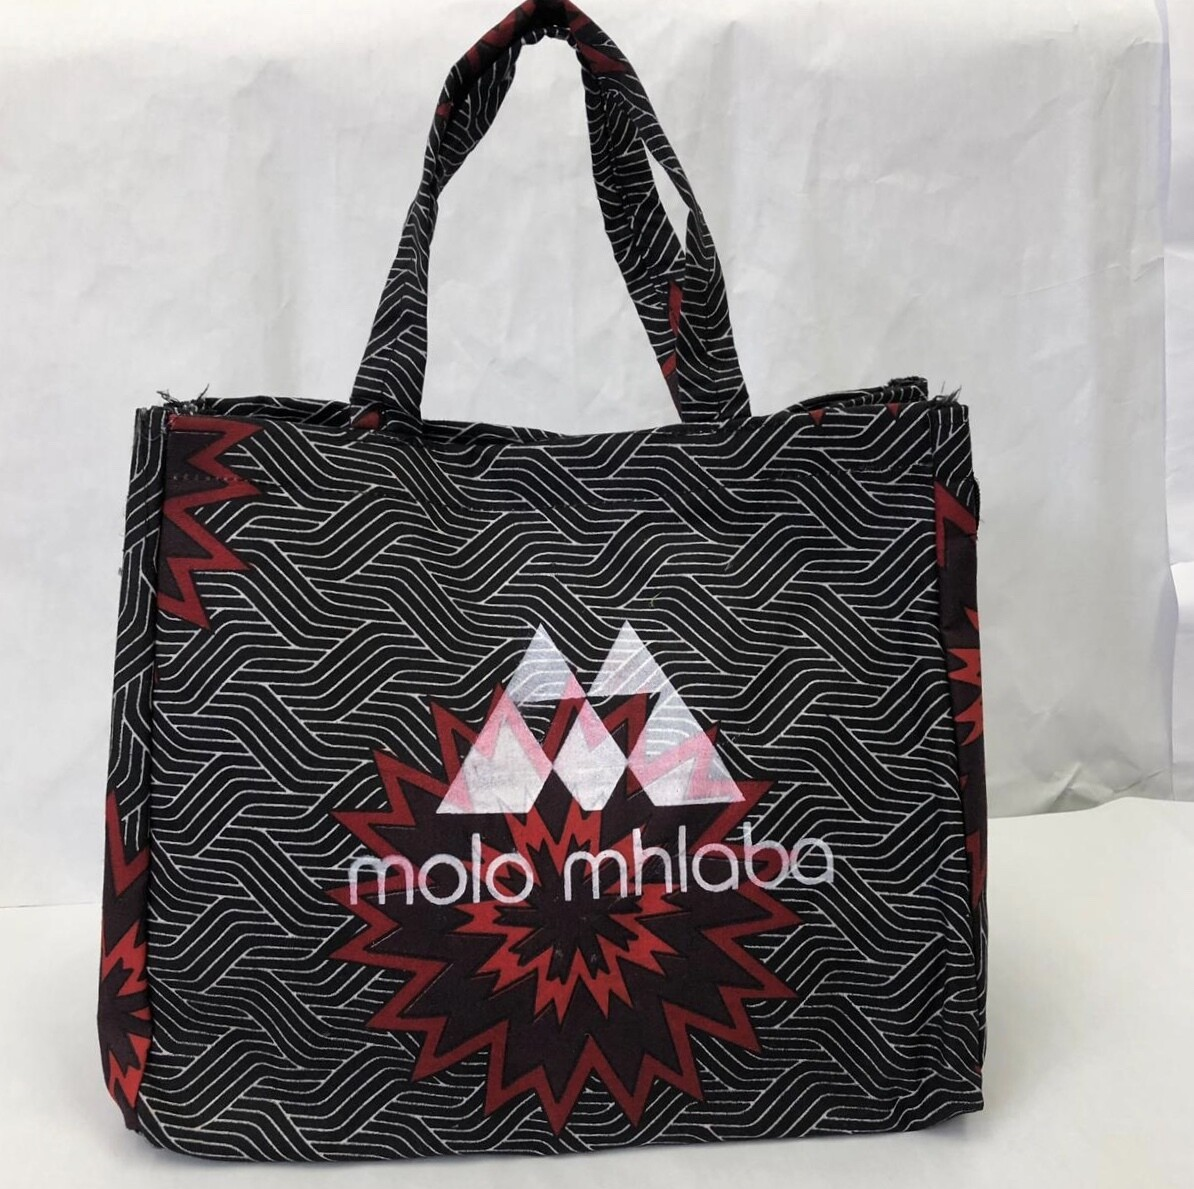 Geometric red/black pattern handbag